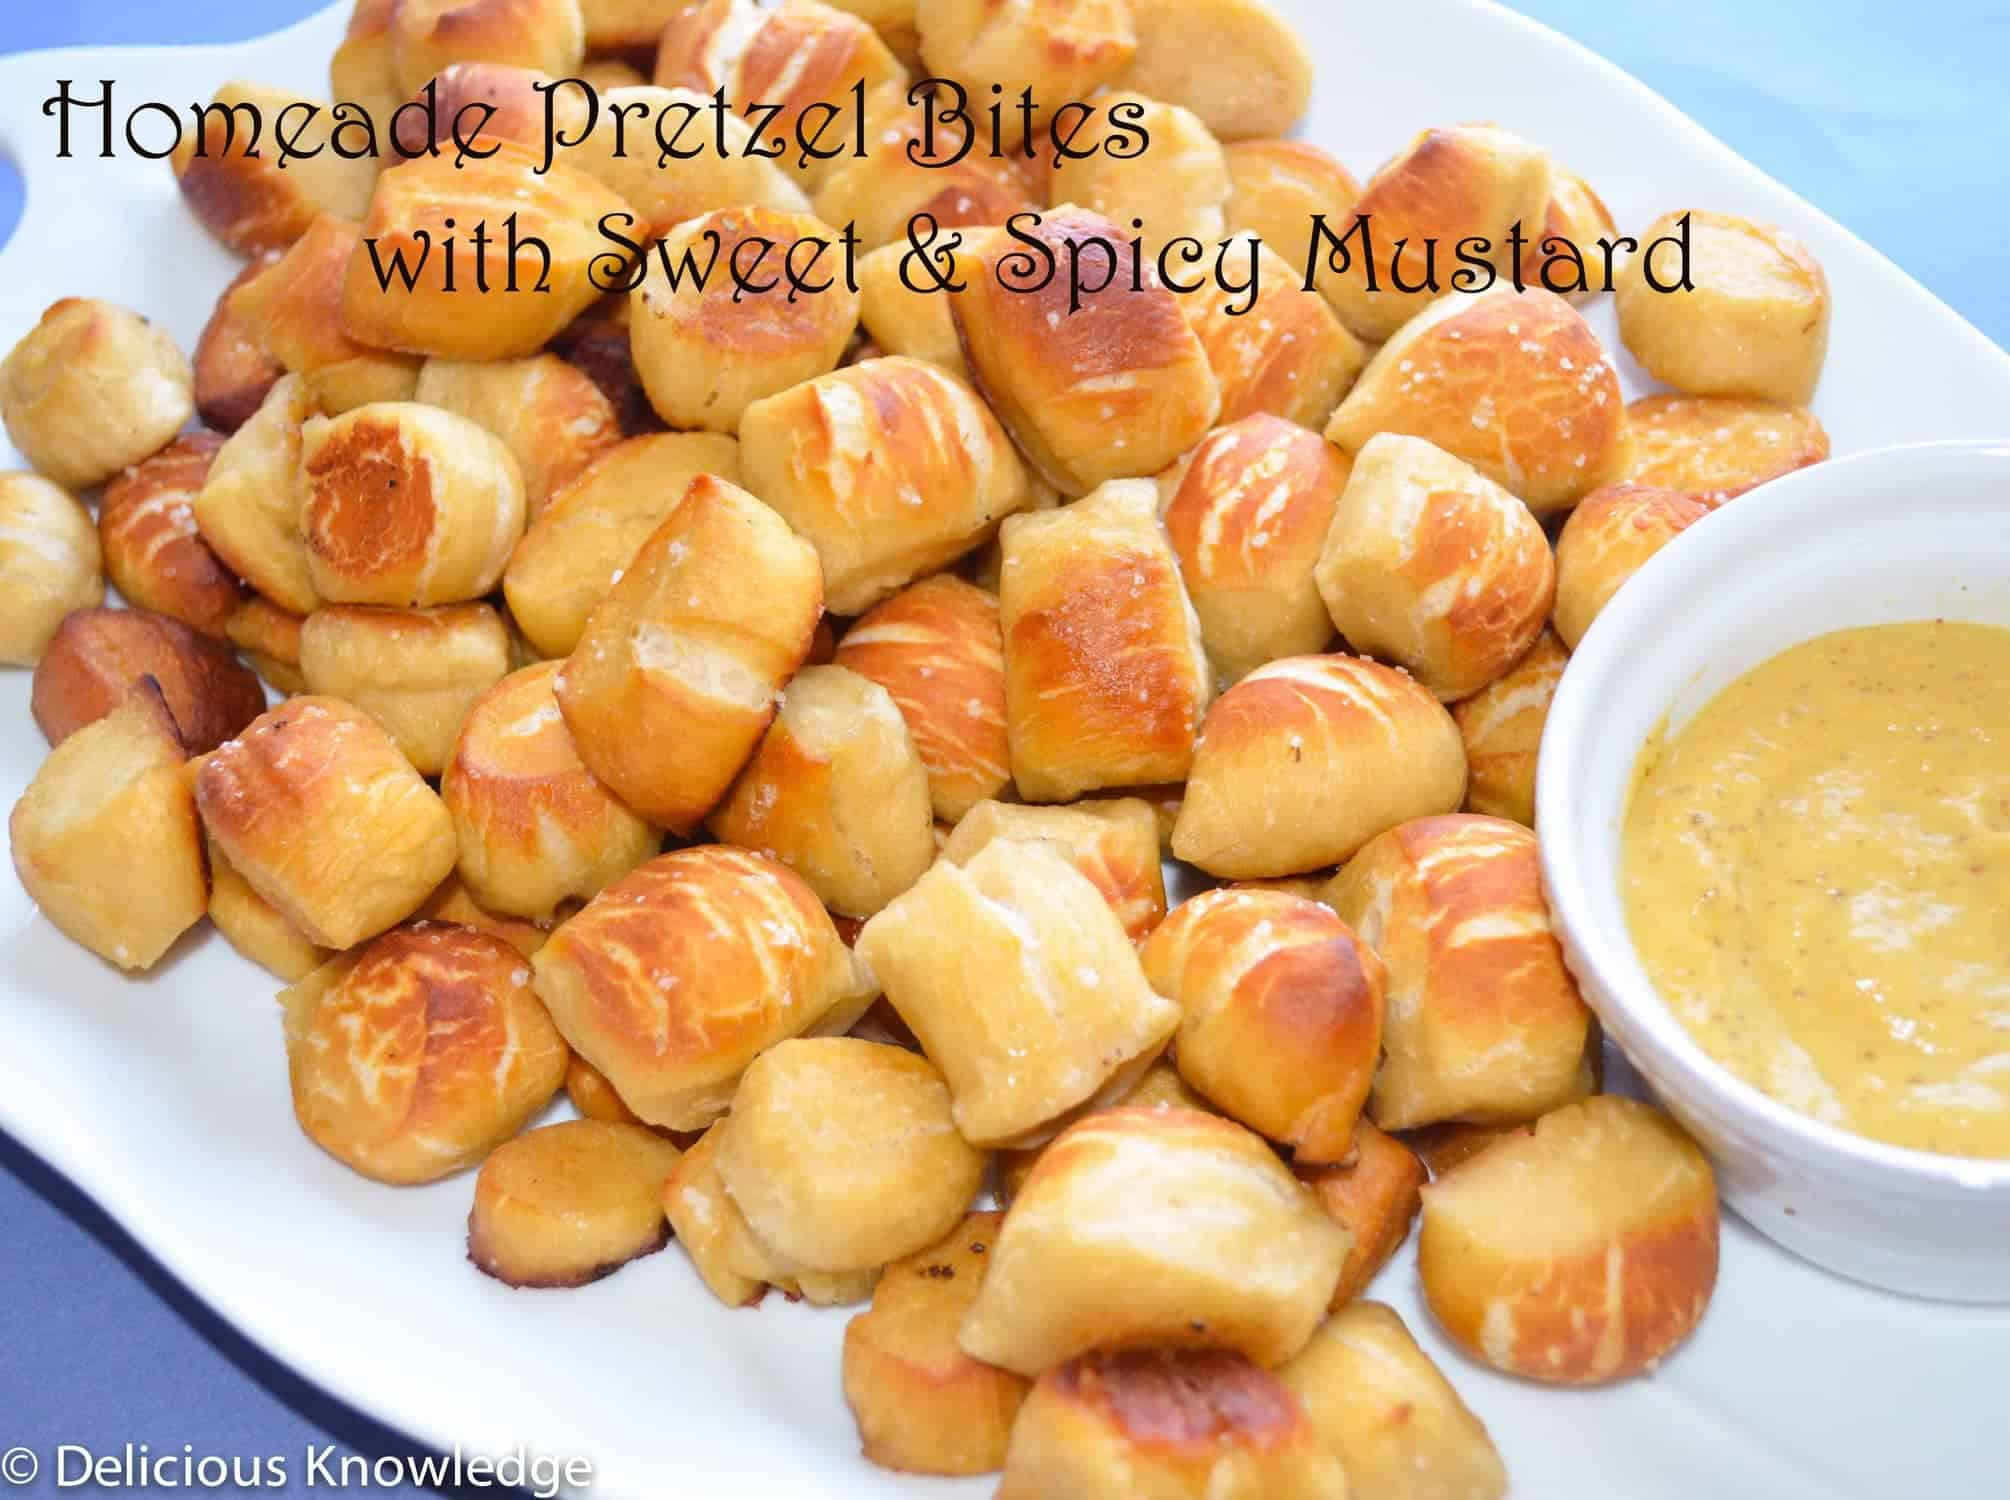 Pretzel Bites with Sweet & Spicy Mustard - Delicious Knowledge